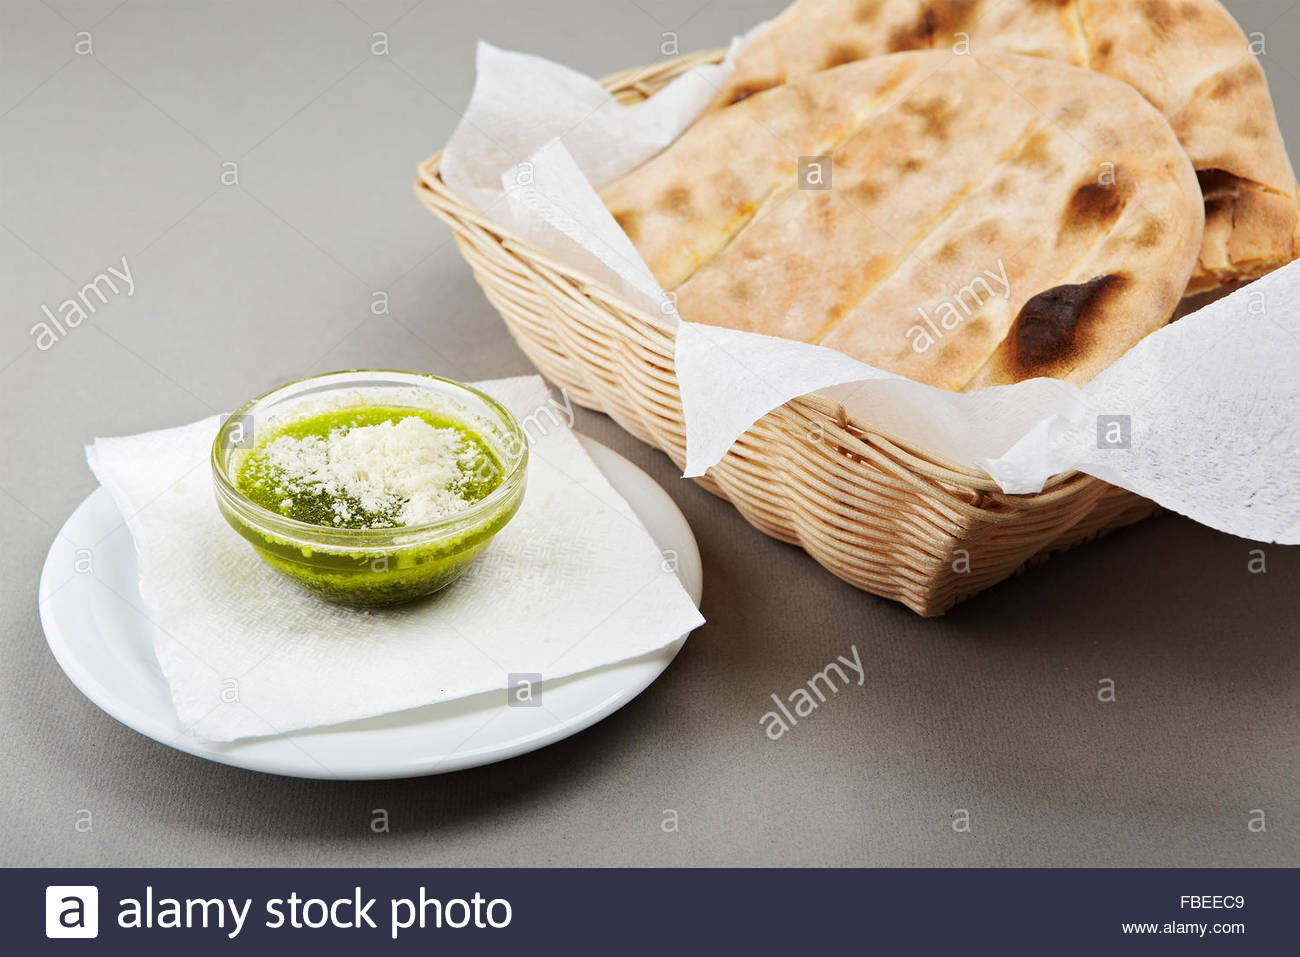 Chiabatta and pesto on grey background - Stock Image